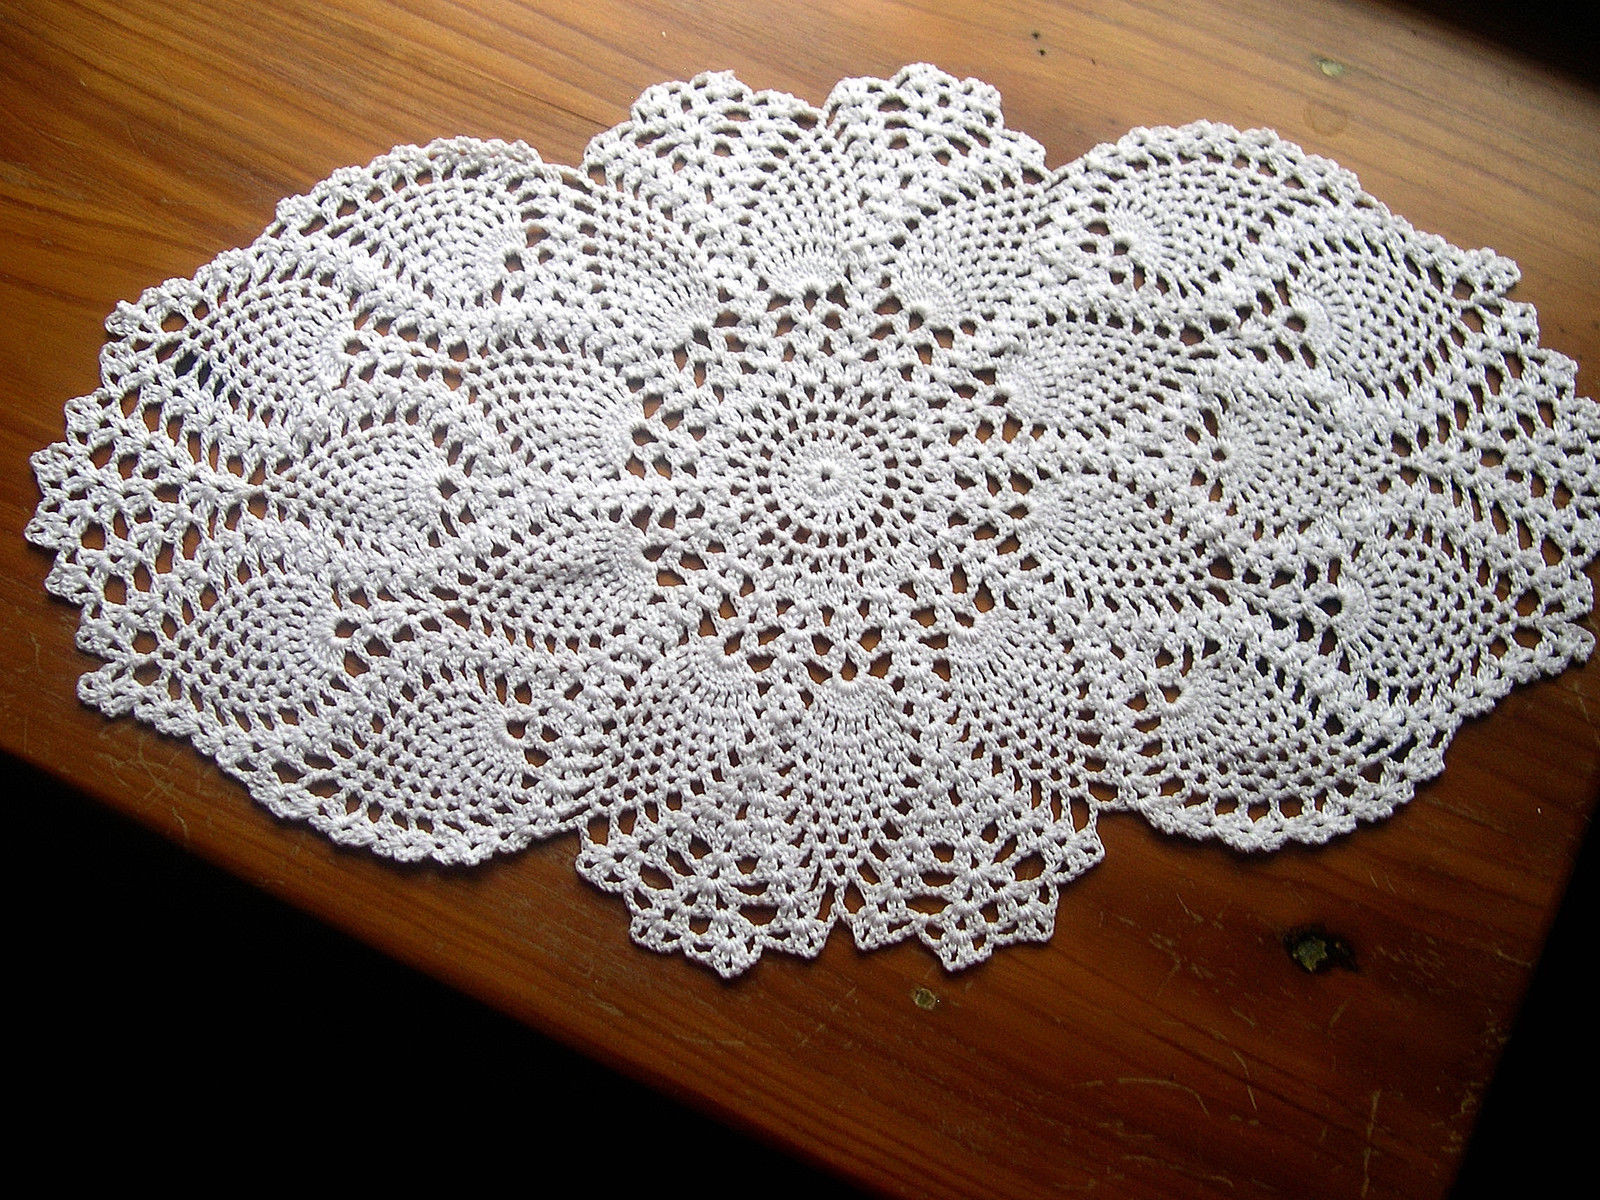 Thread Crocheted Doily Tablecloth Centerpiece Oval Lace